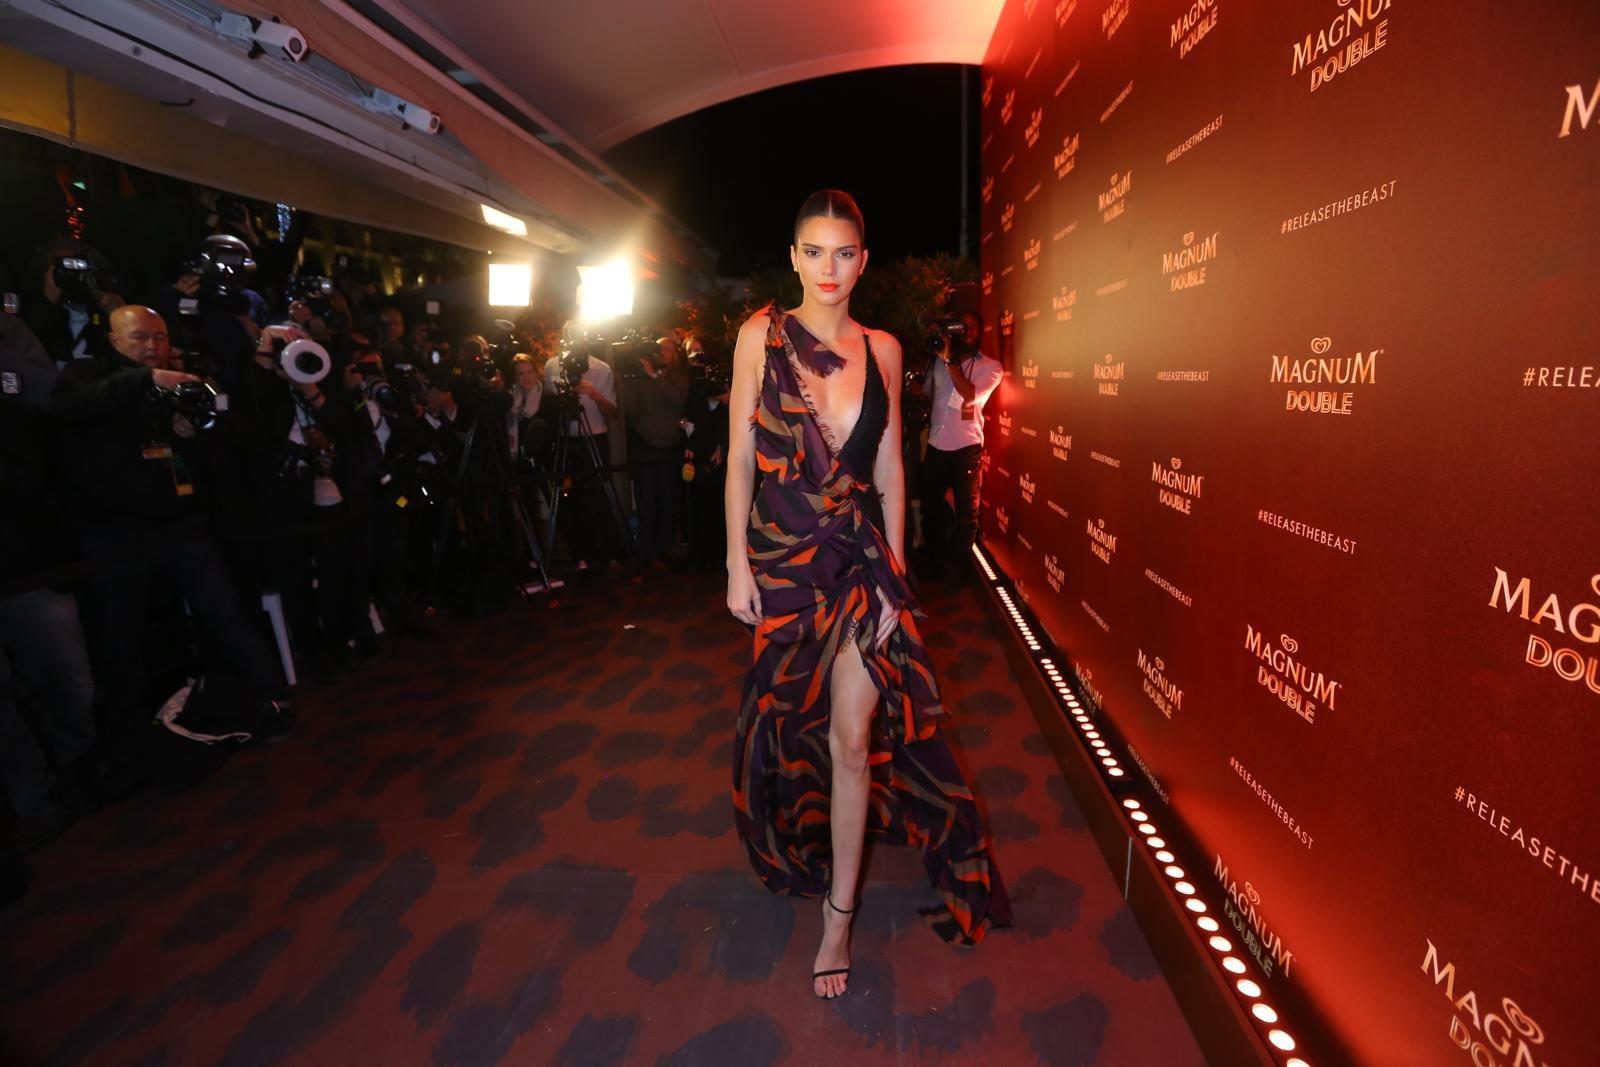 Kendall Jenner dares to unveil her wild side at the Magnum Double launch party in Cannes.